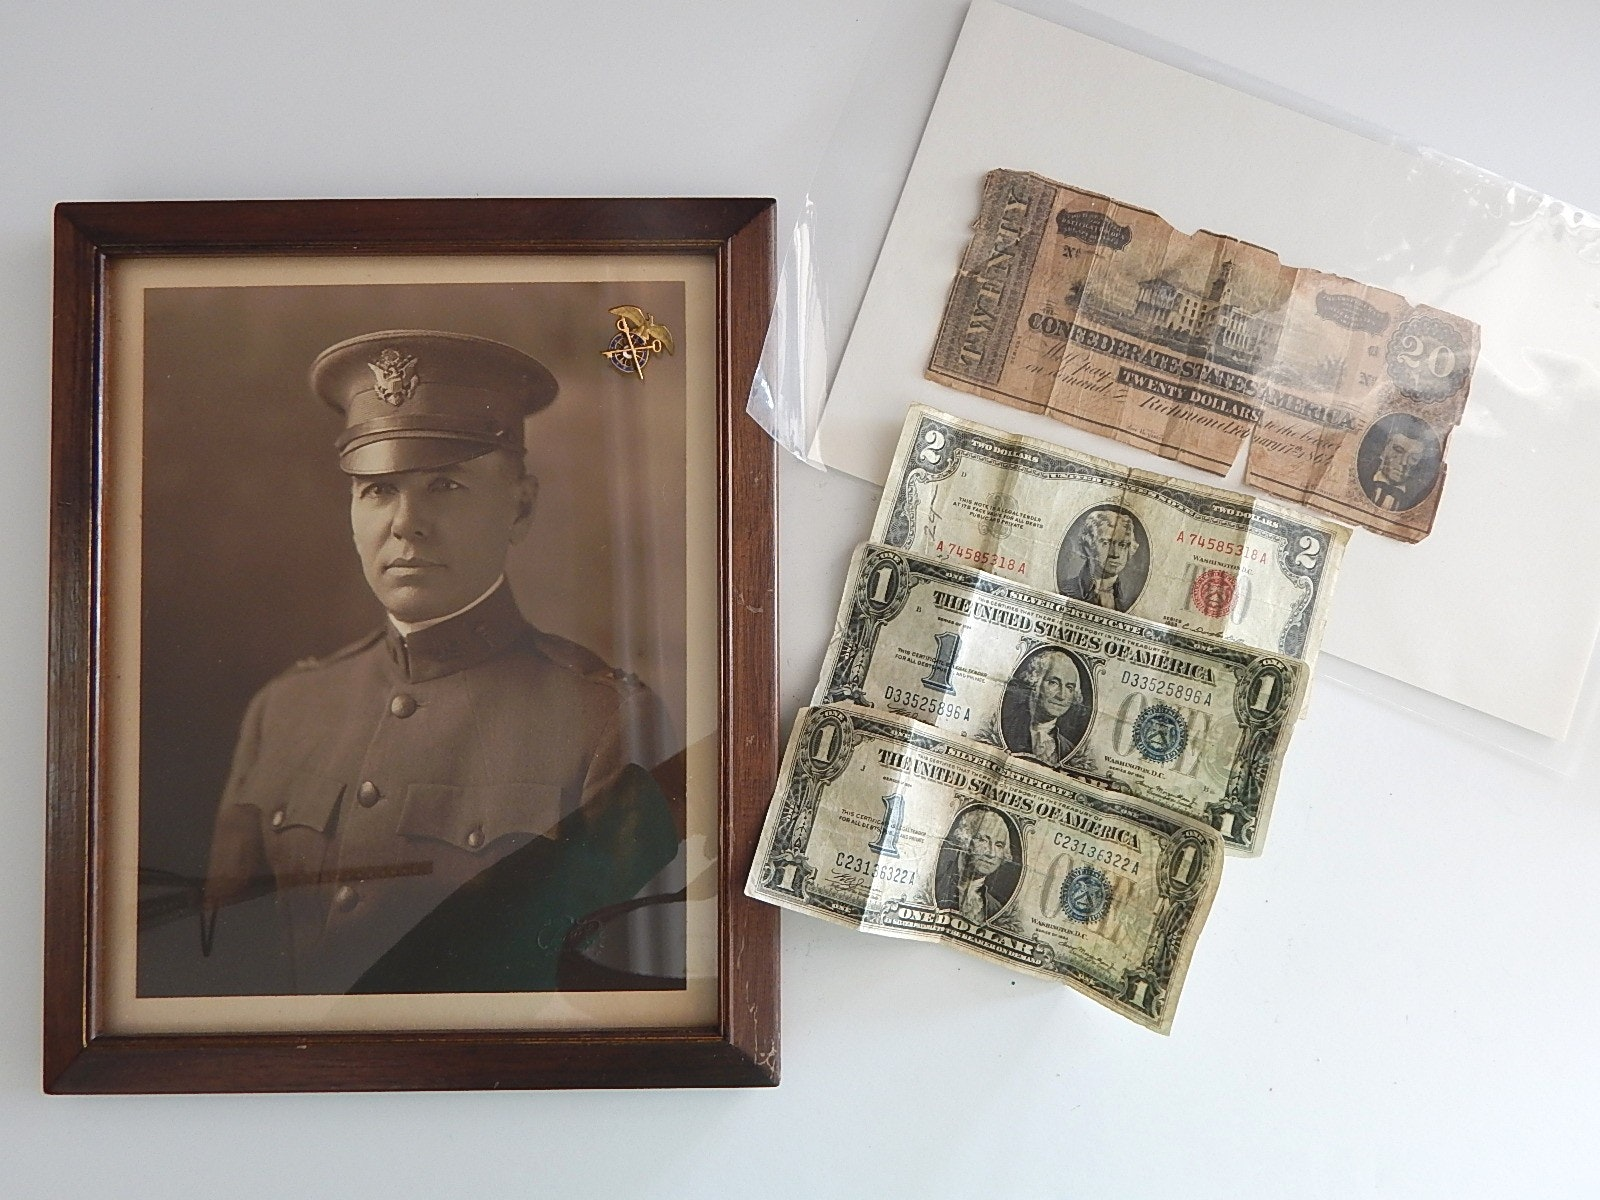 Collectible Currency and Military Framed Photo w/Pin